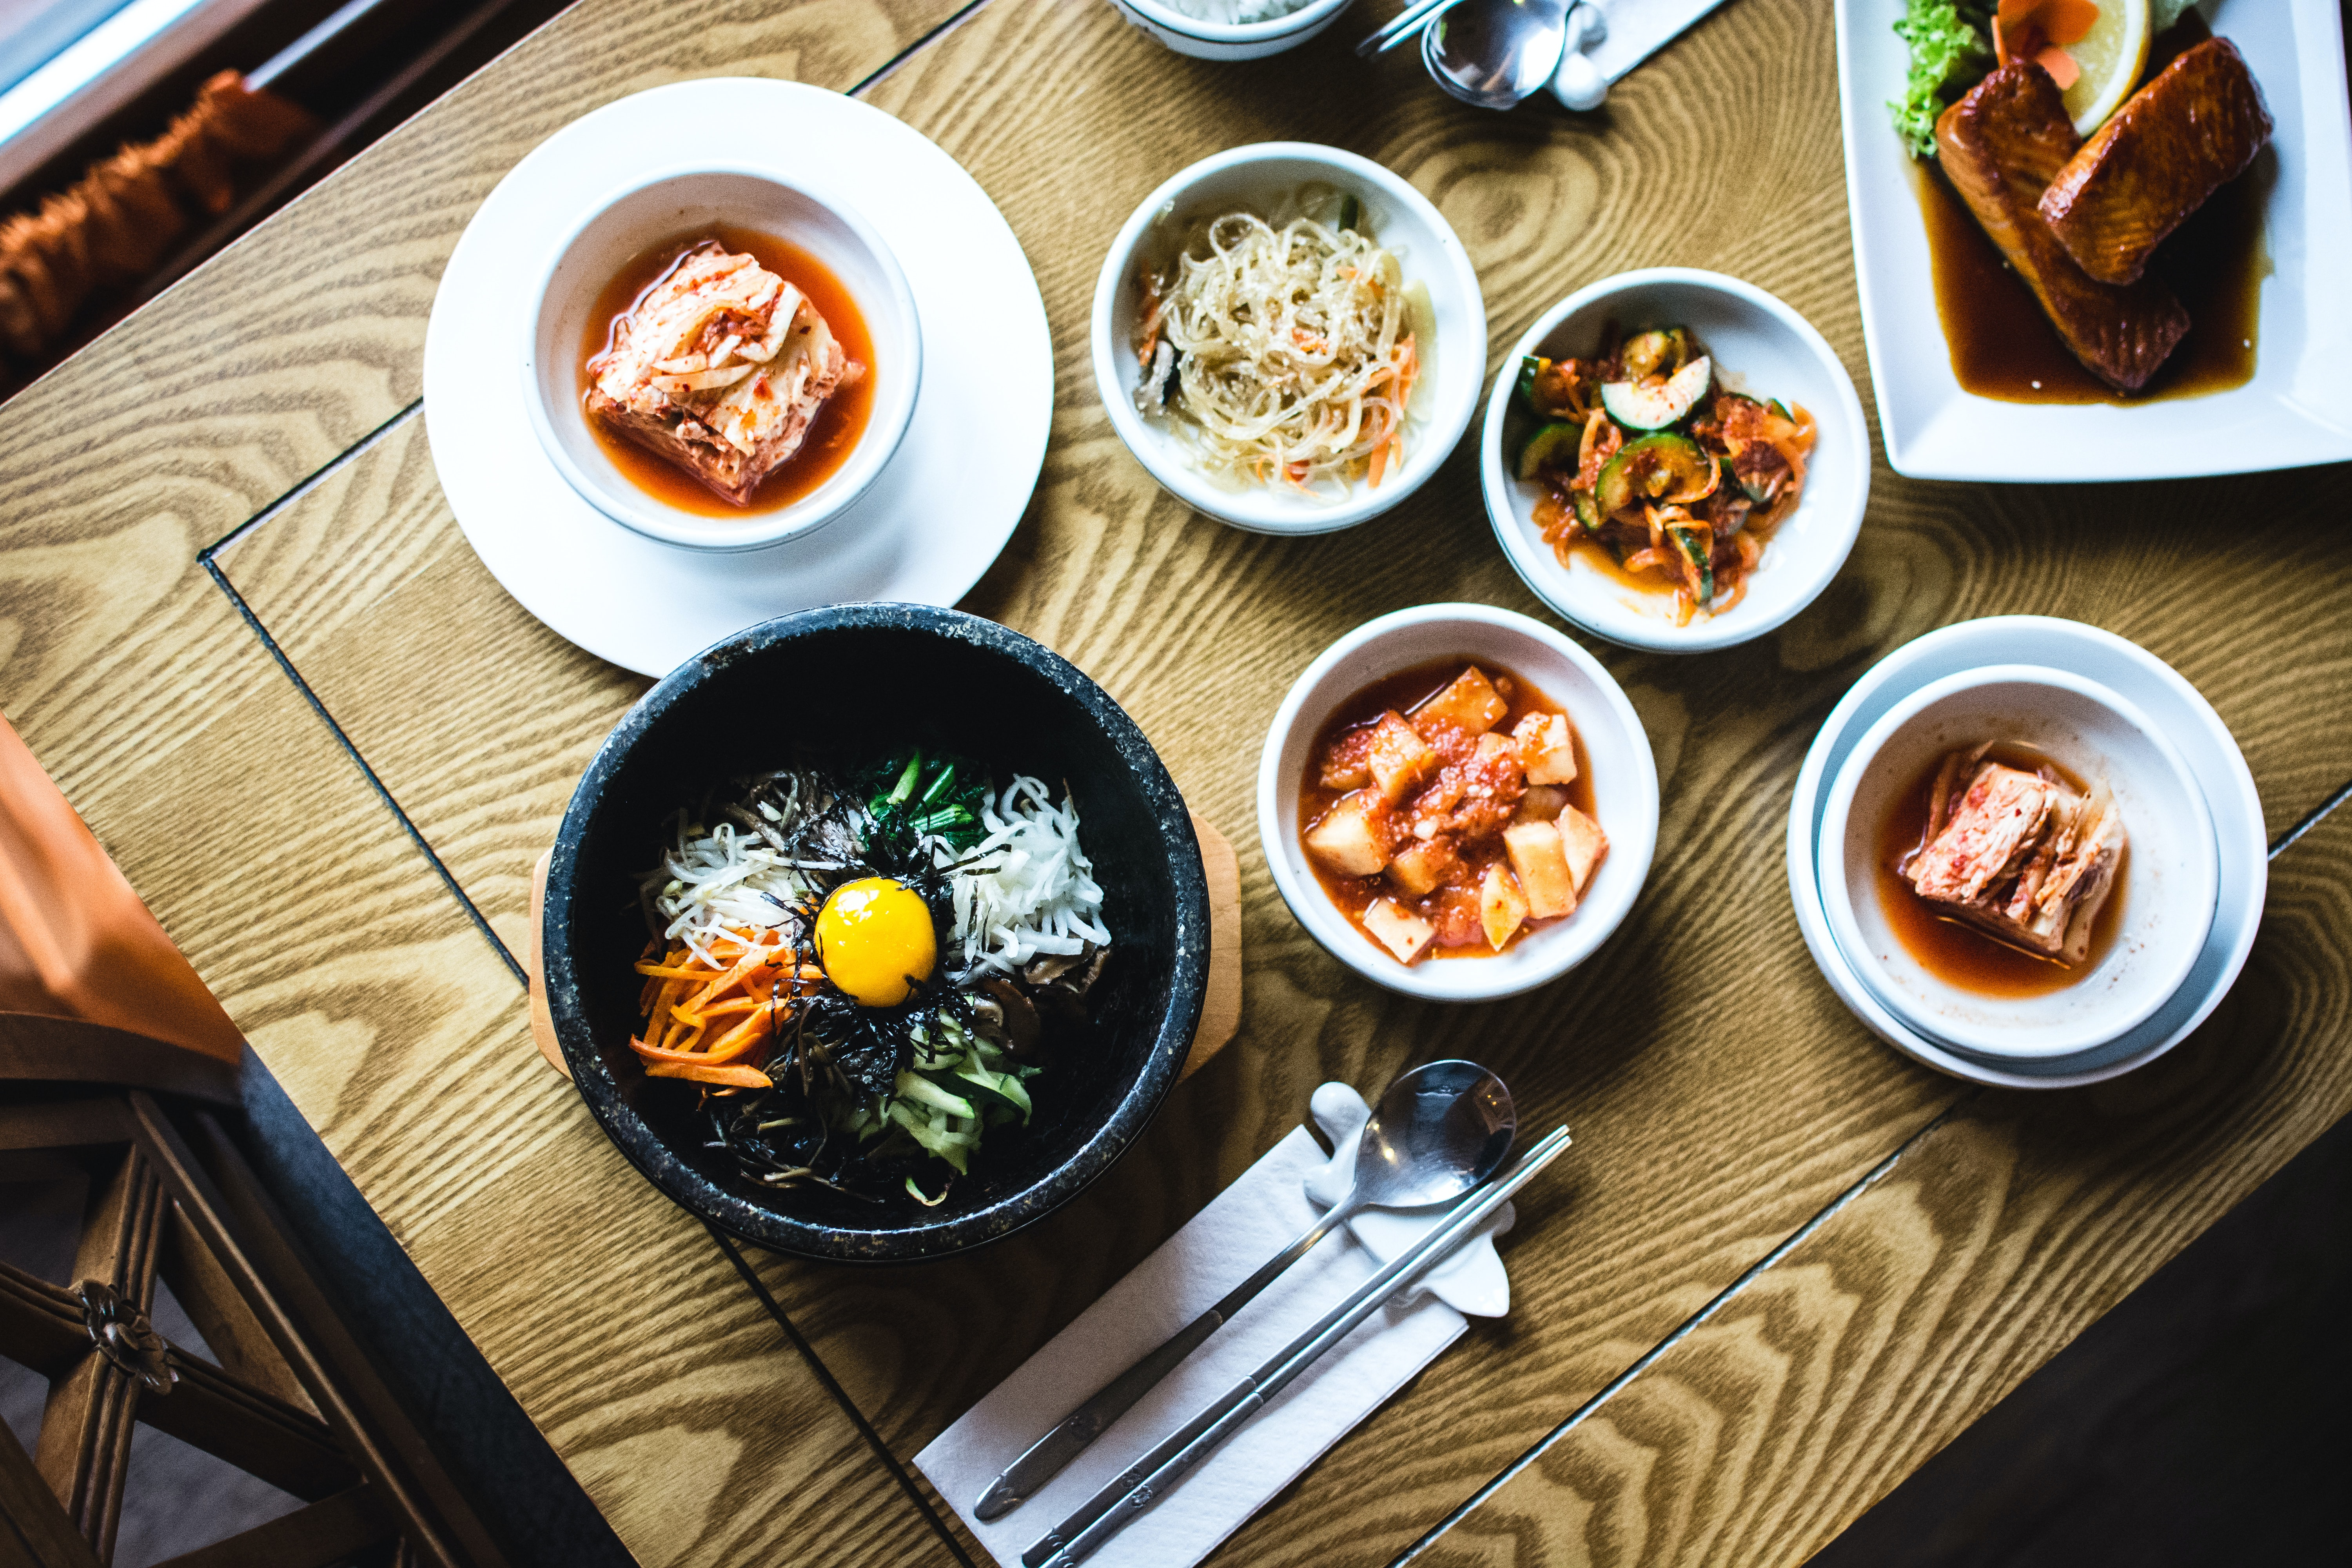 Overhead shot of table with bowls of pho, kimchi, and Korean food